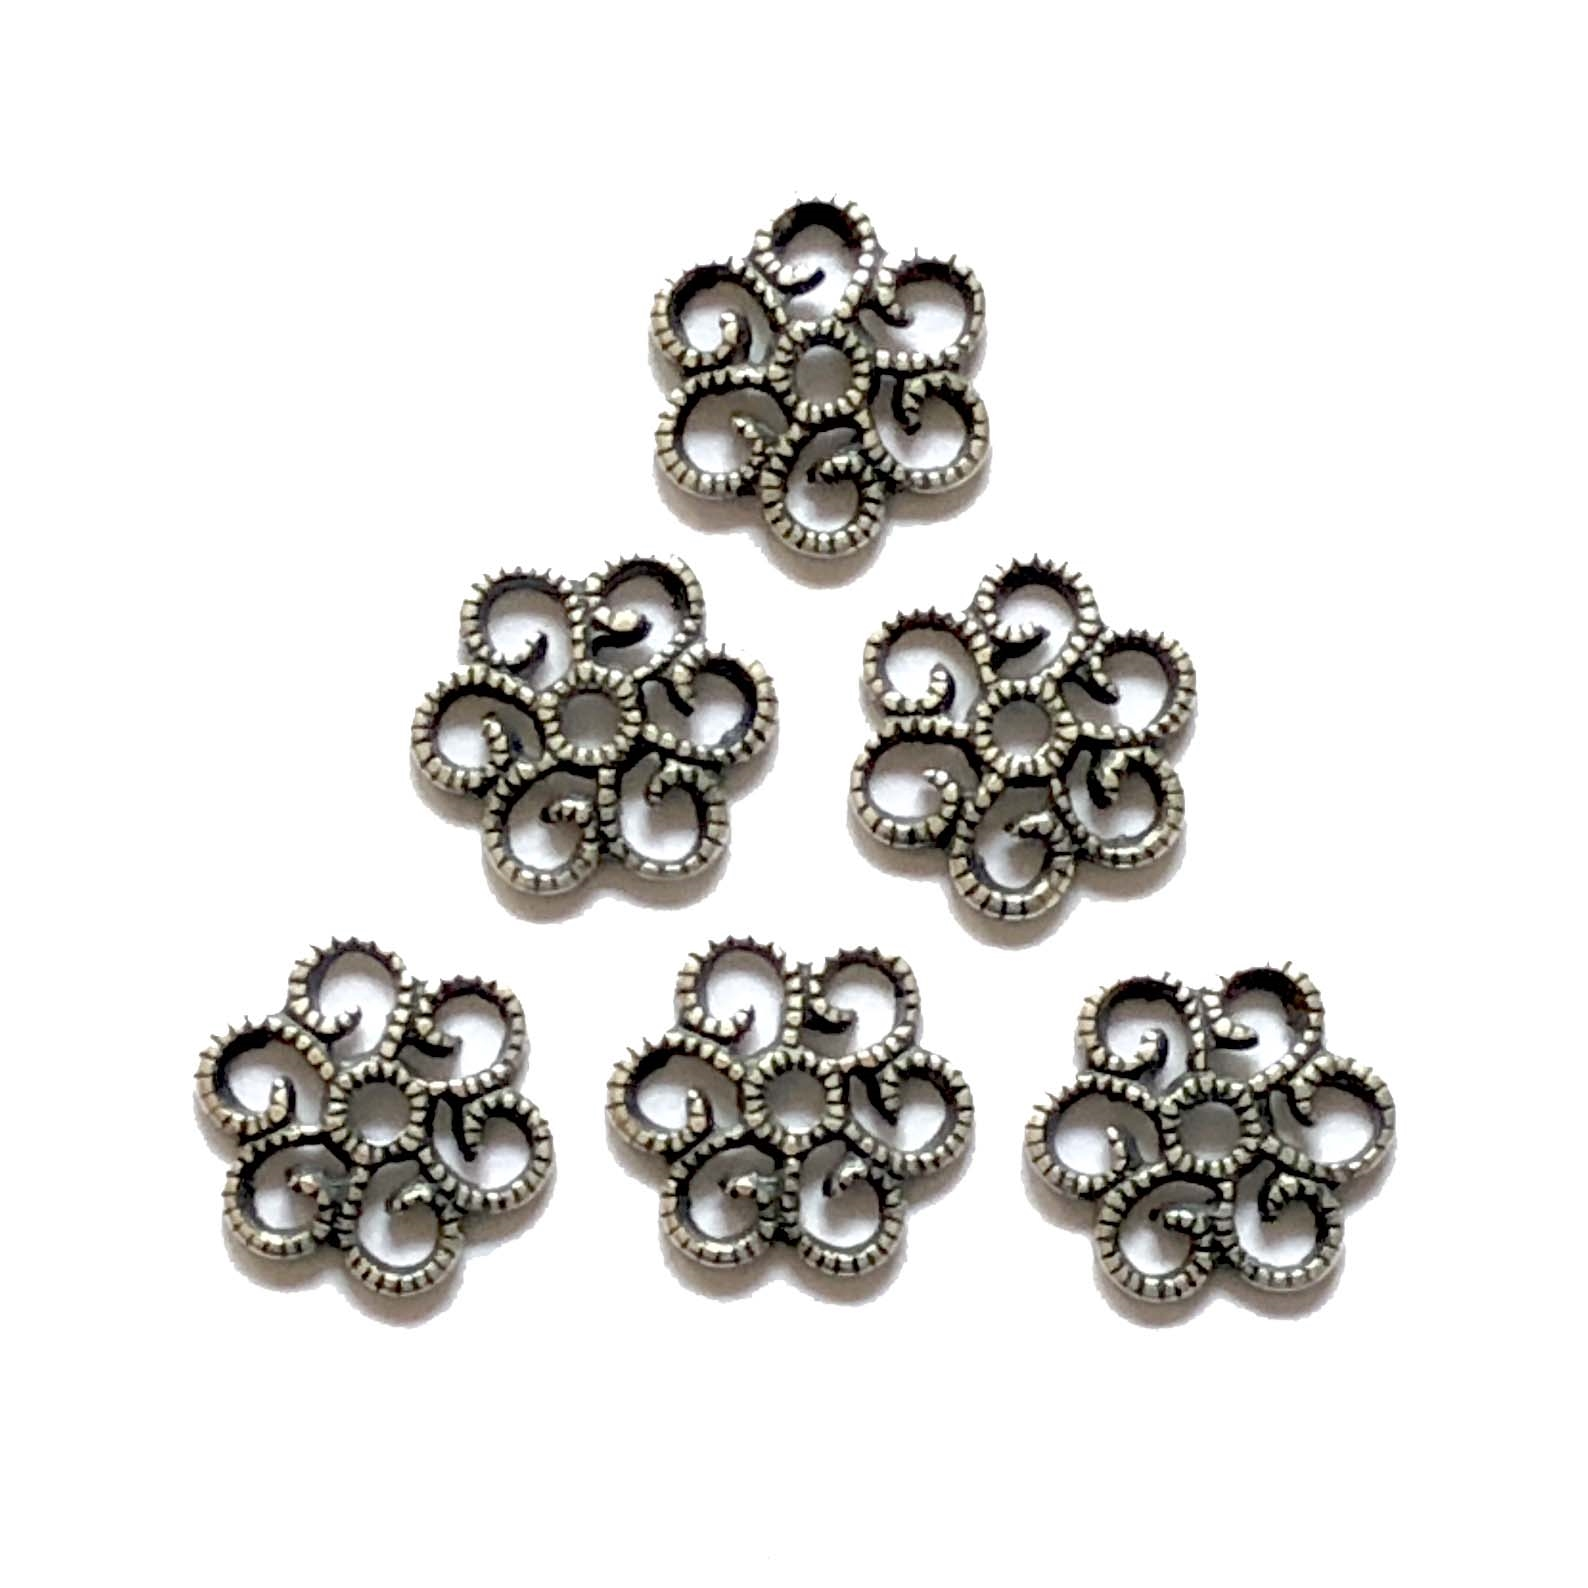 brass flower stamping, silverware, open flower stamping, 08350, antique silver, black antiquing, silverware silverplate, bracelet charms, US made, nickel free, bsueboutiques, jewelry making supplies, vintage jewelry supplies